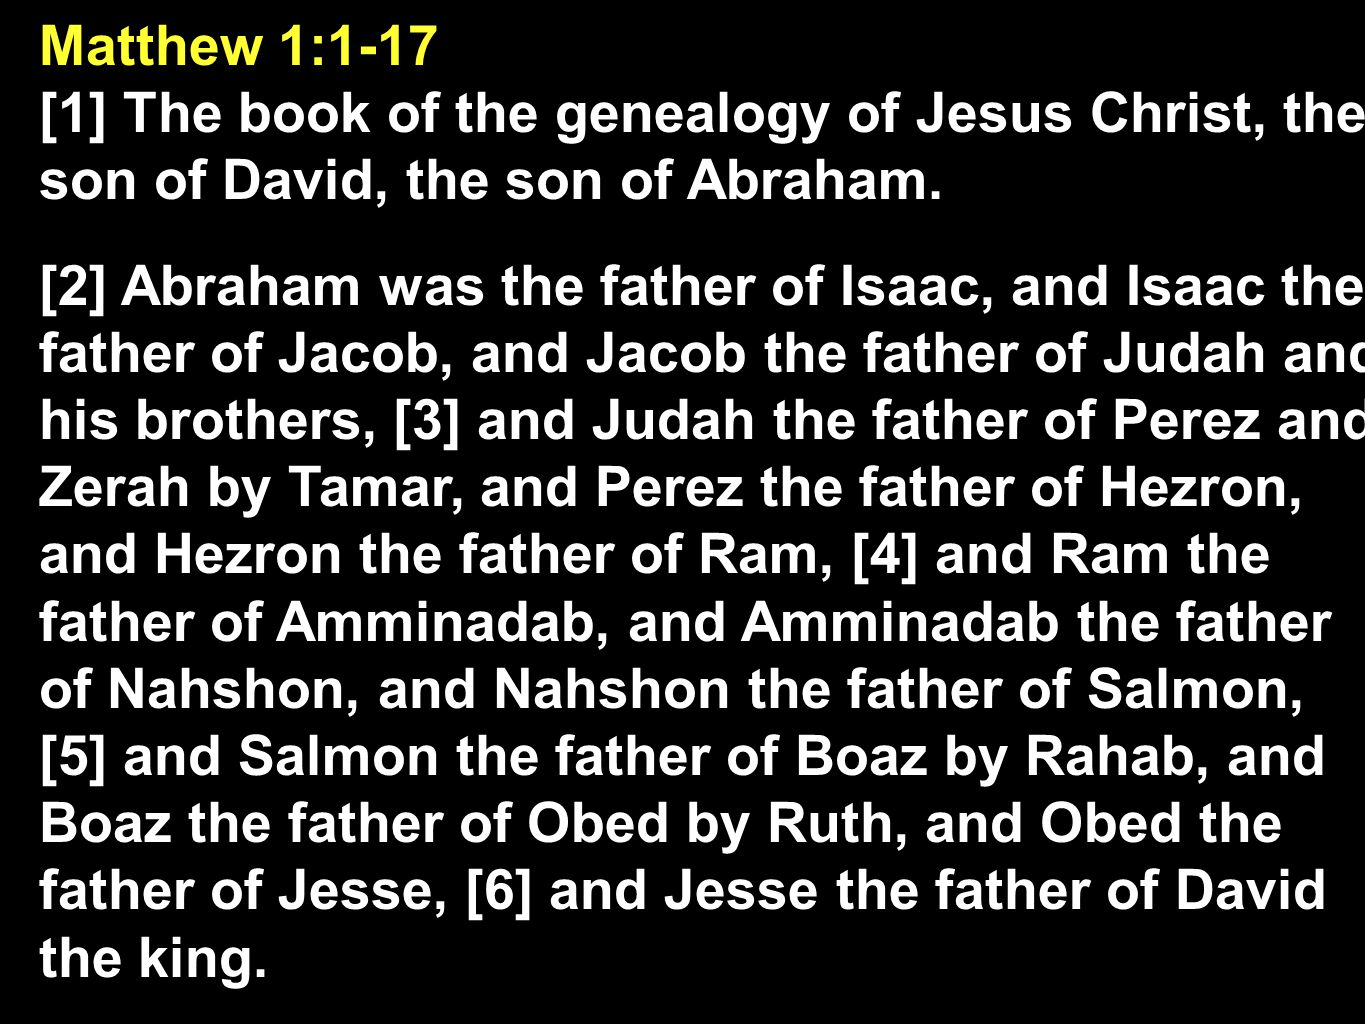 [1] The book of the genealogy of Jesus Christ, the son of David, the son of Abraham.